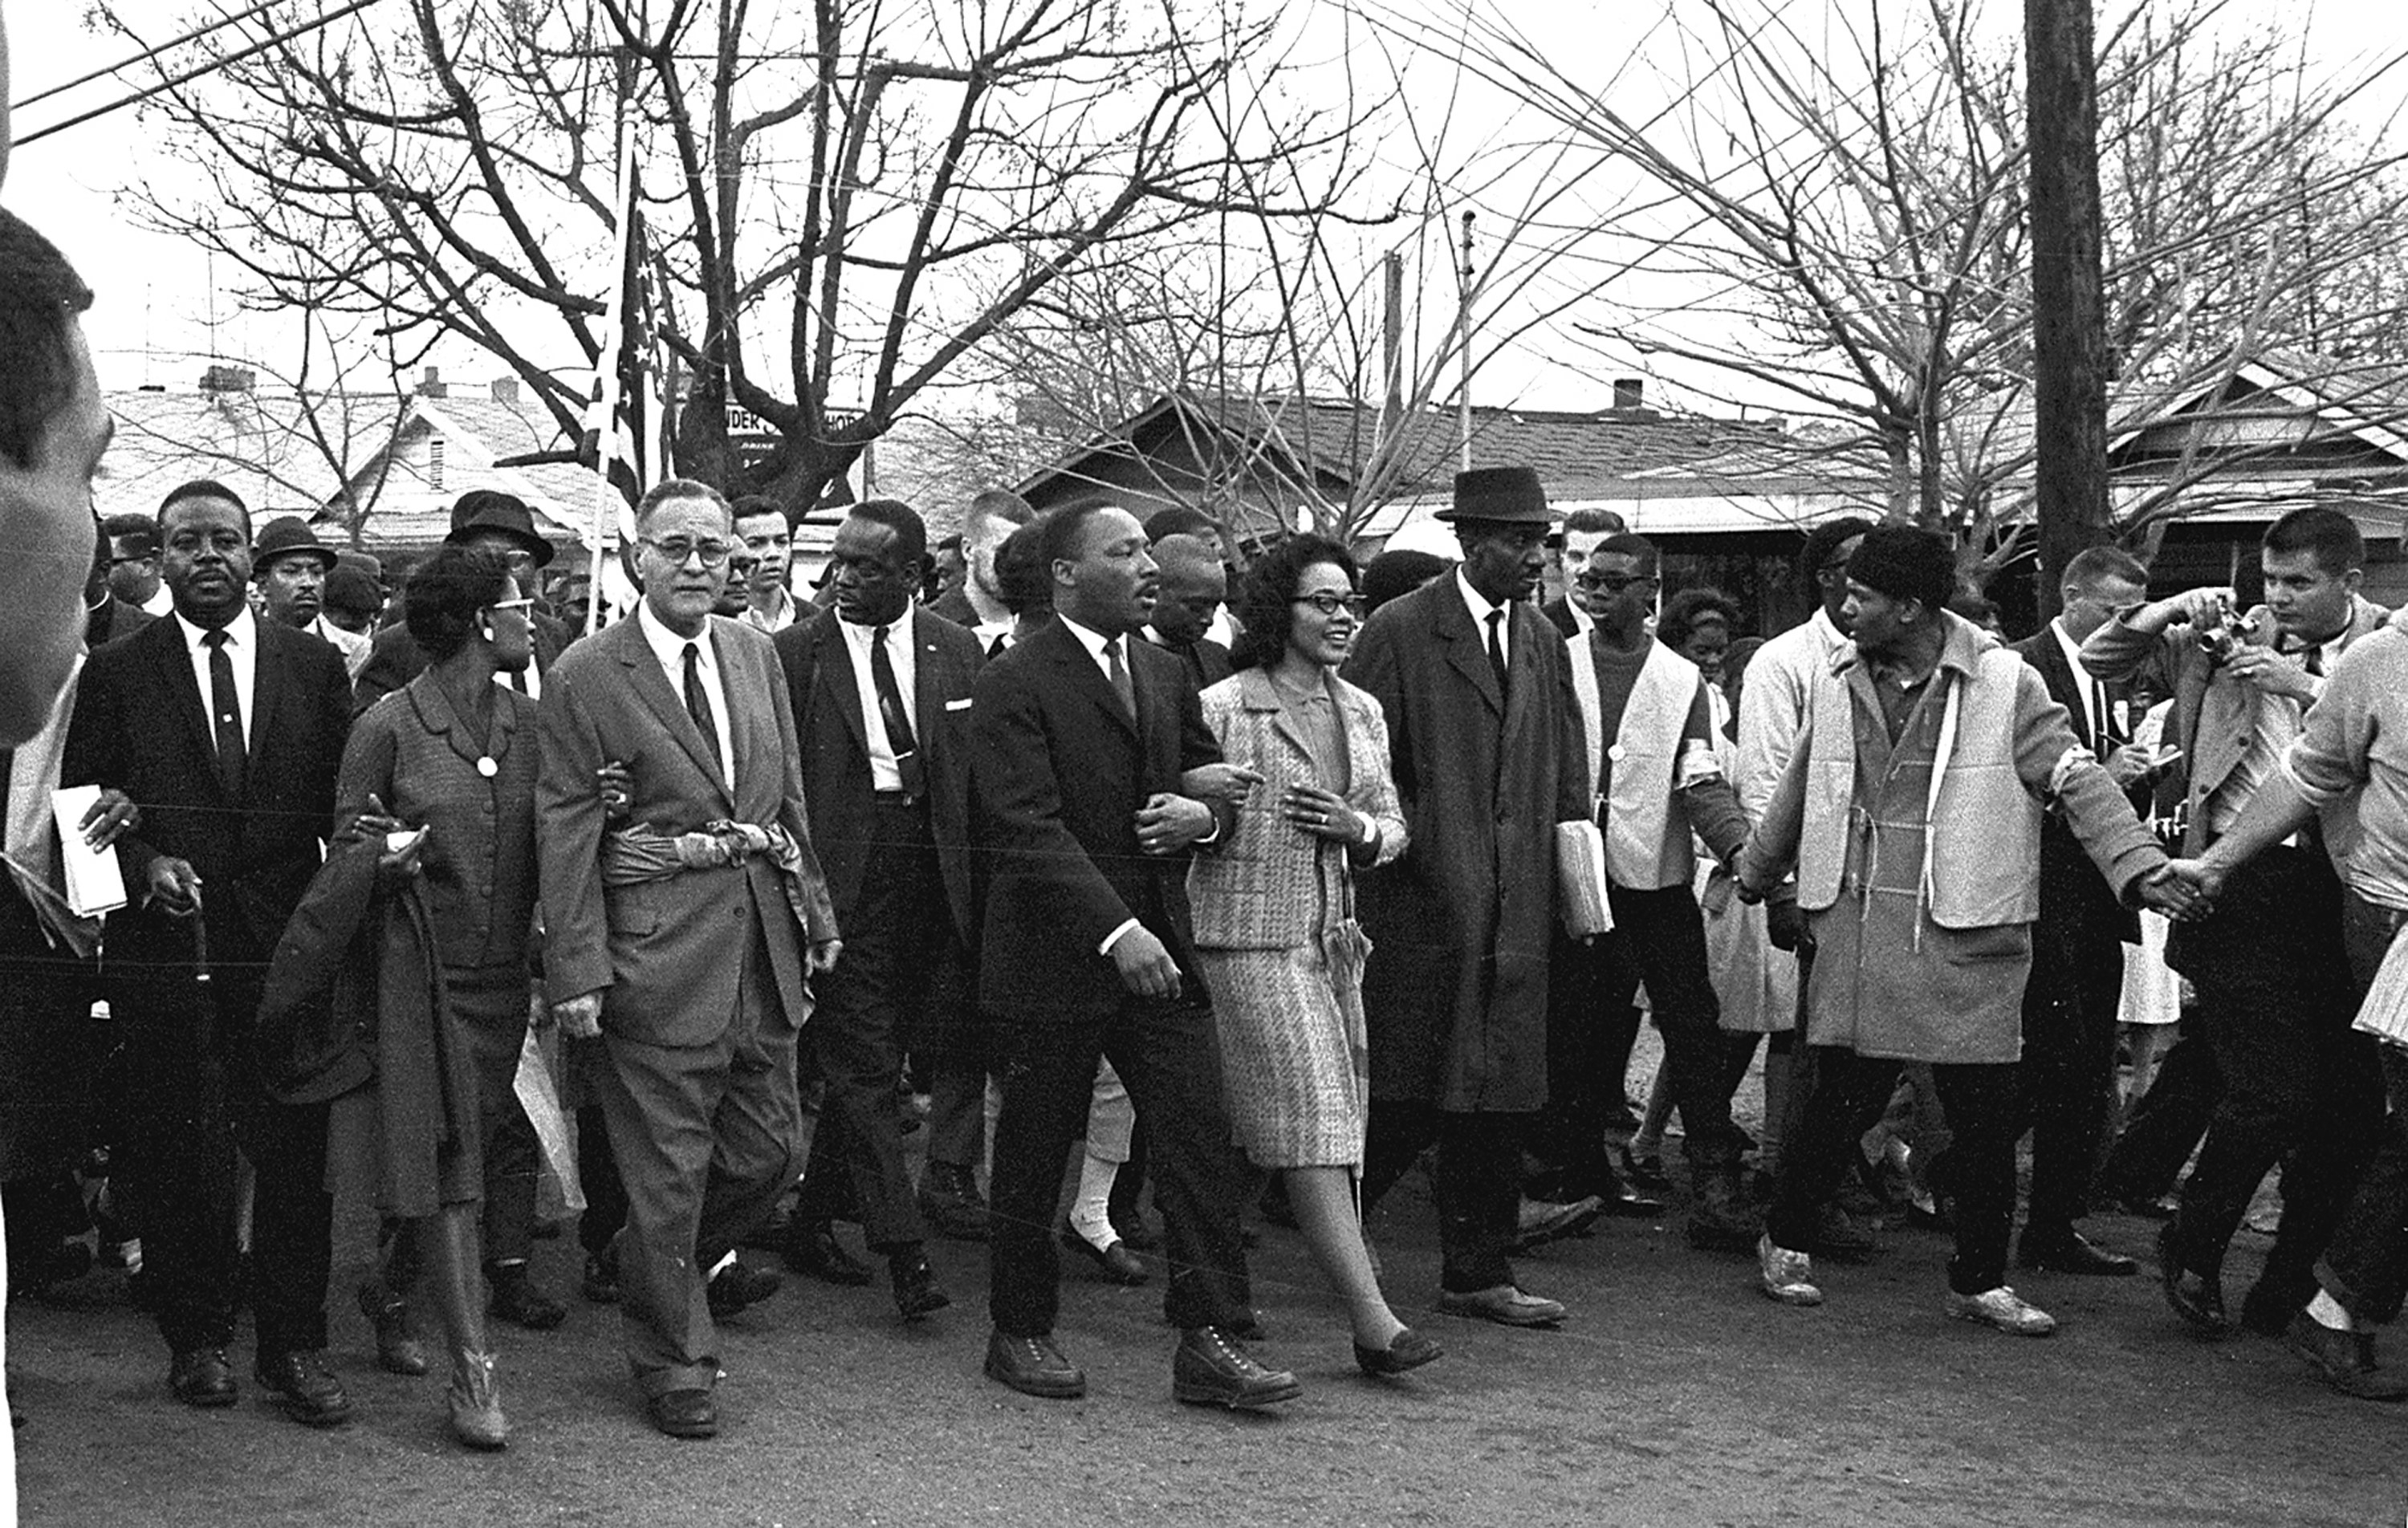 Martin Luther King Jr. and his wife lead a march of black and white people dressed nicely down the street